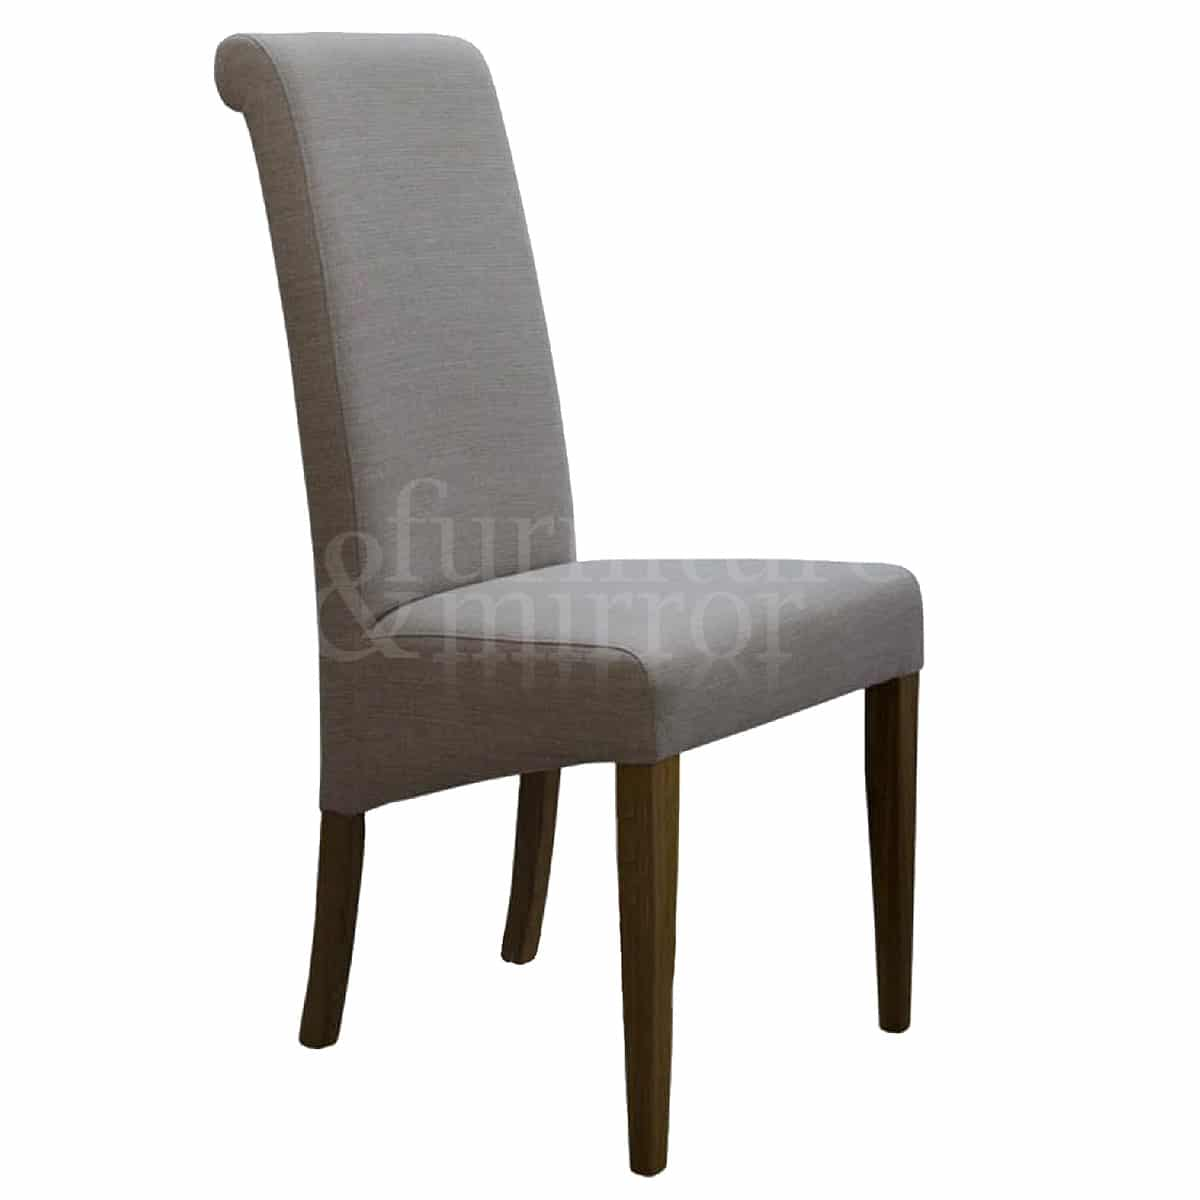 beige dining chairs foldable aluminum sports chair napoli fabric furniture and mirror